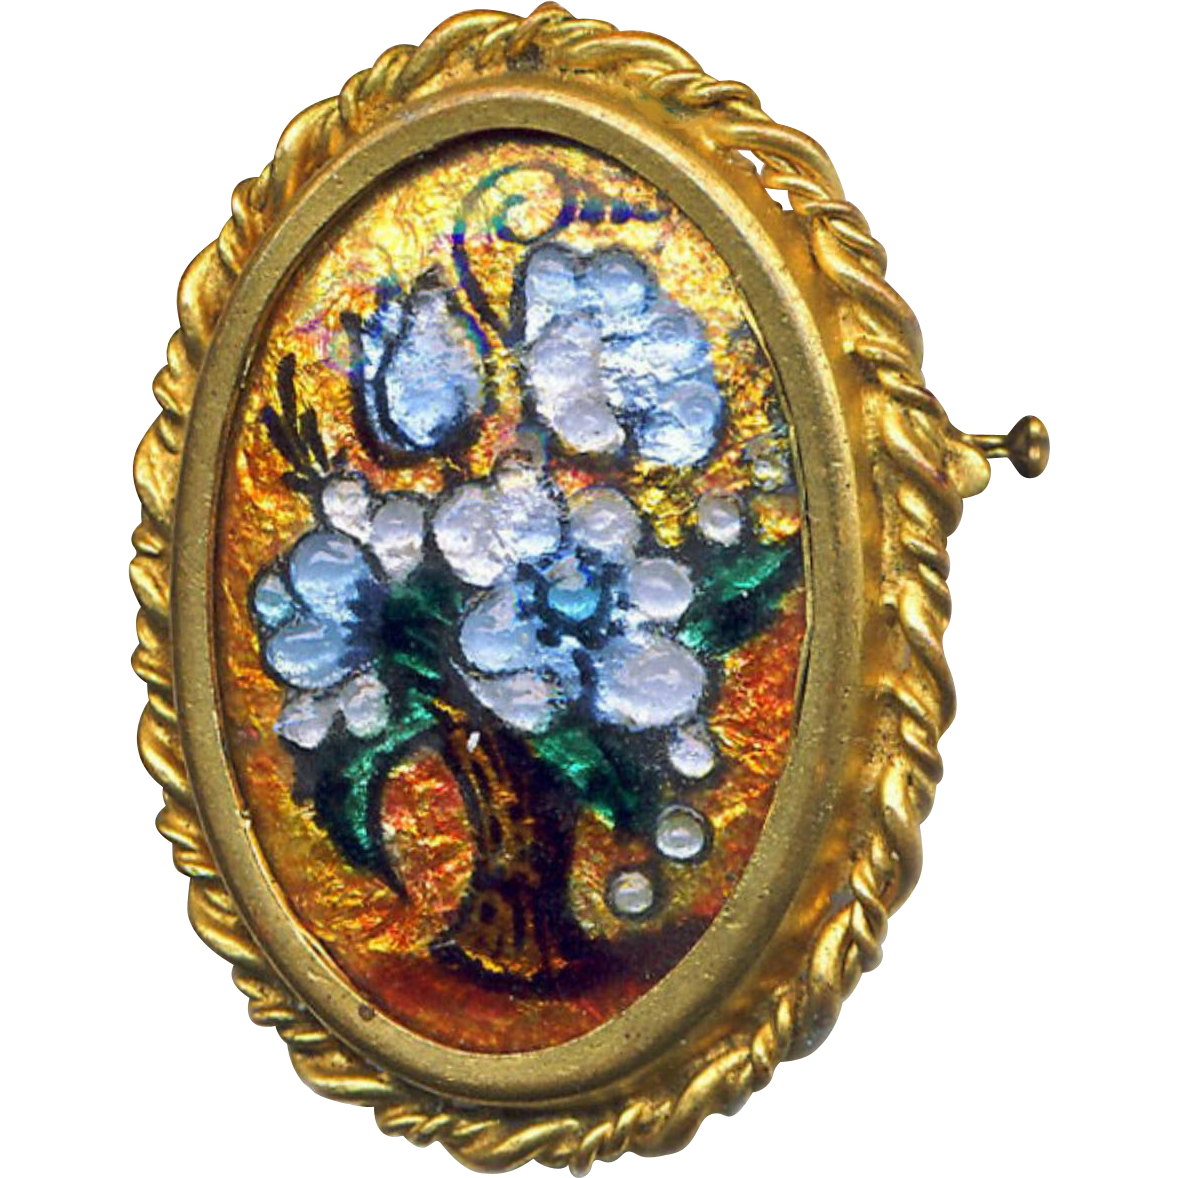 Brooch--Vintage 1950s Paris Limoges Enamel by T. Bevins Opalescent Fleurs in Vase